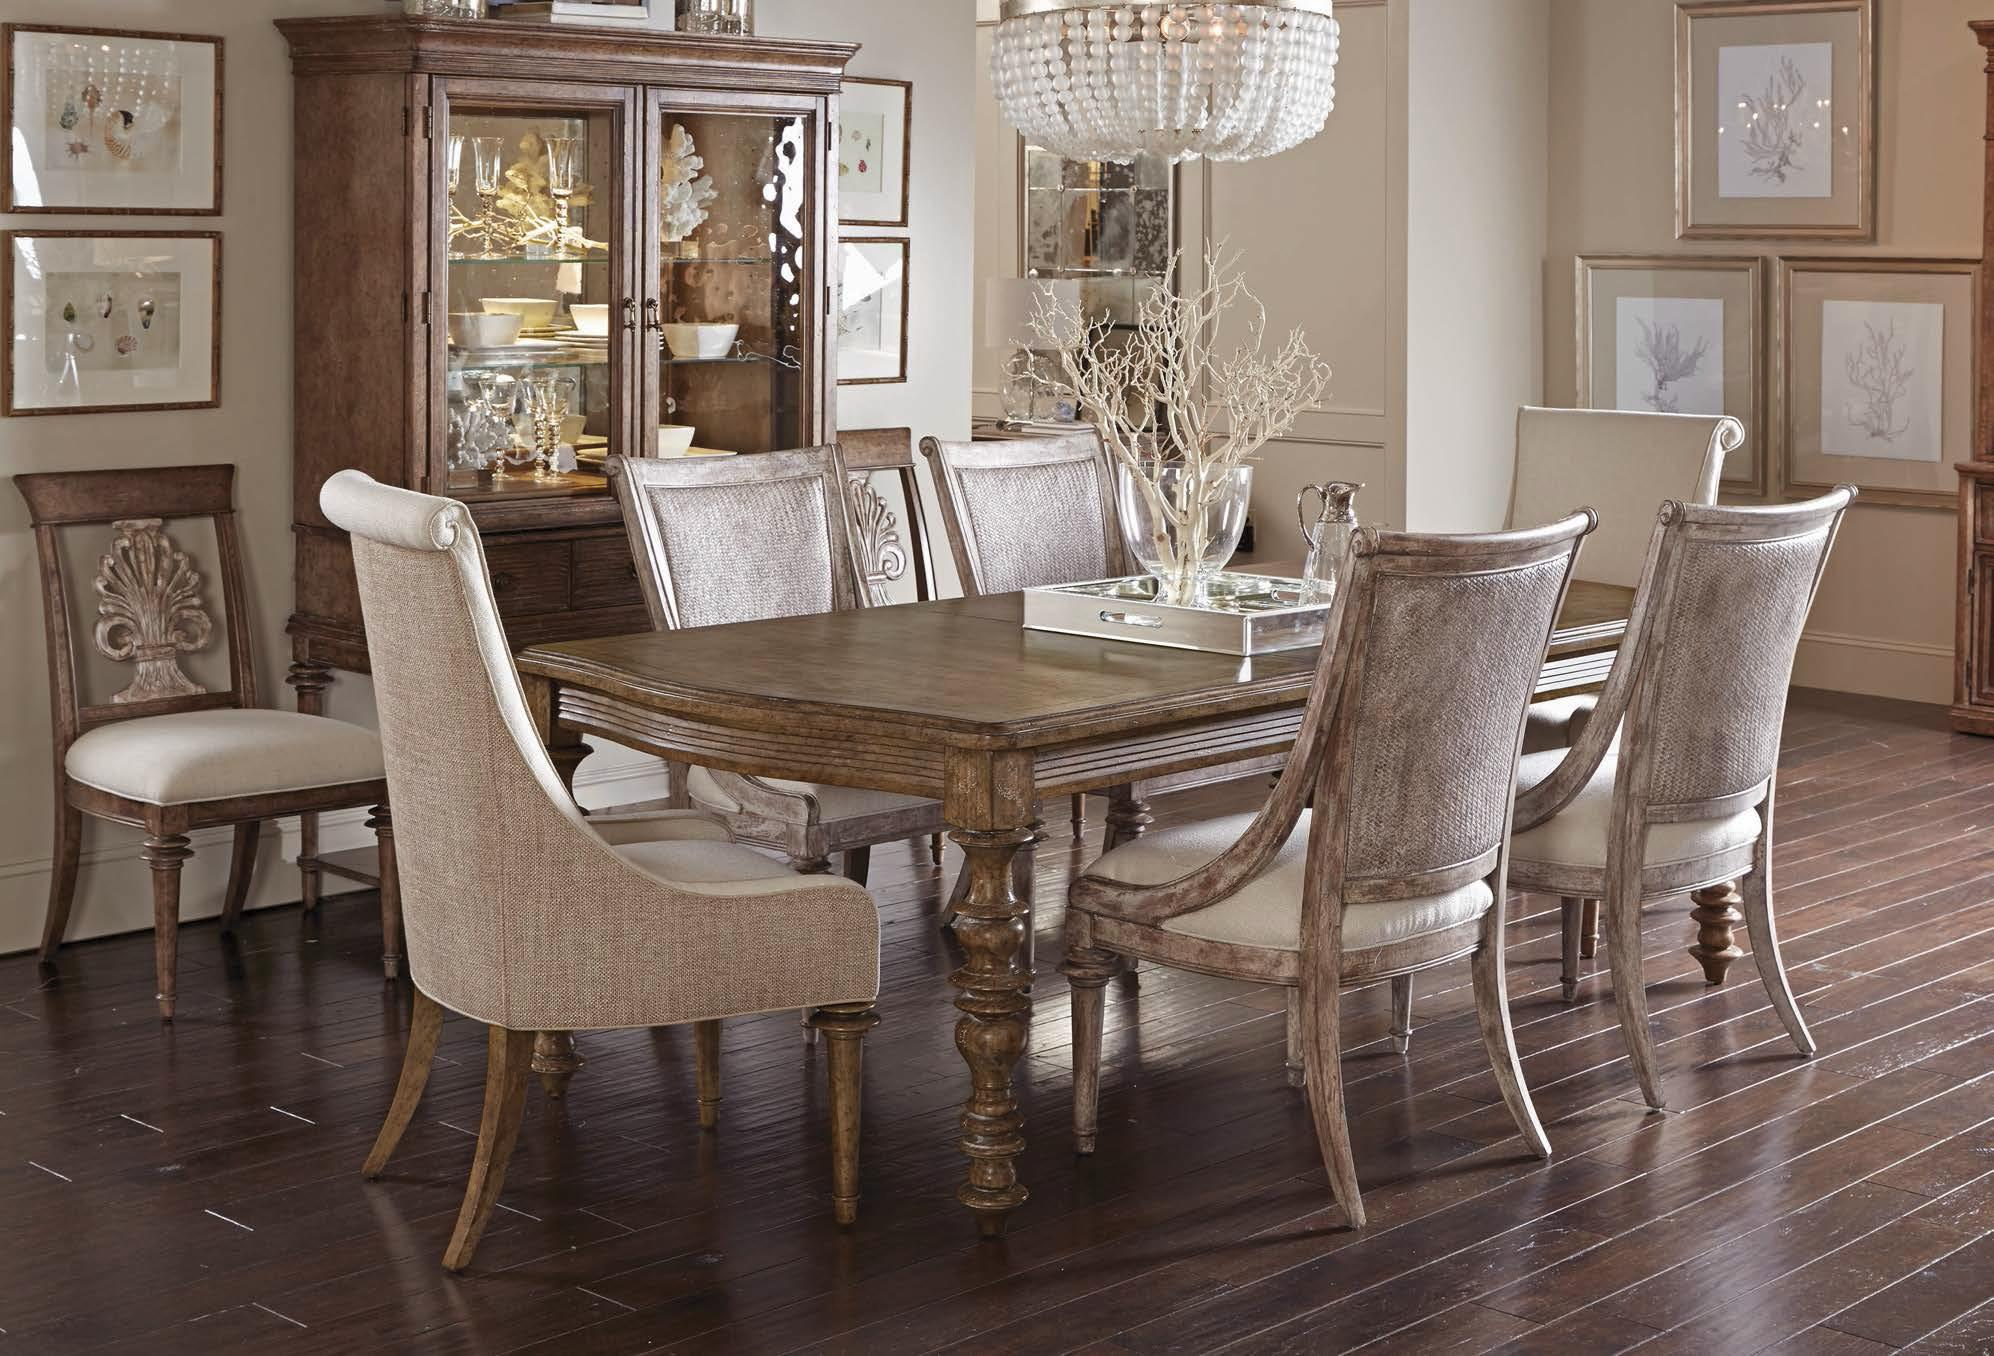 A r t furniture inc pavilion 7 piece leg dining table set for A r t dining room furniture